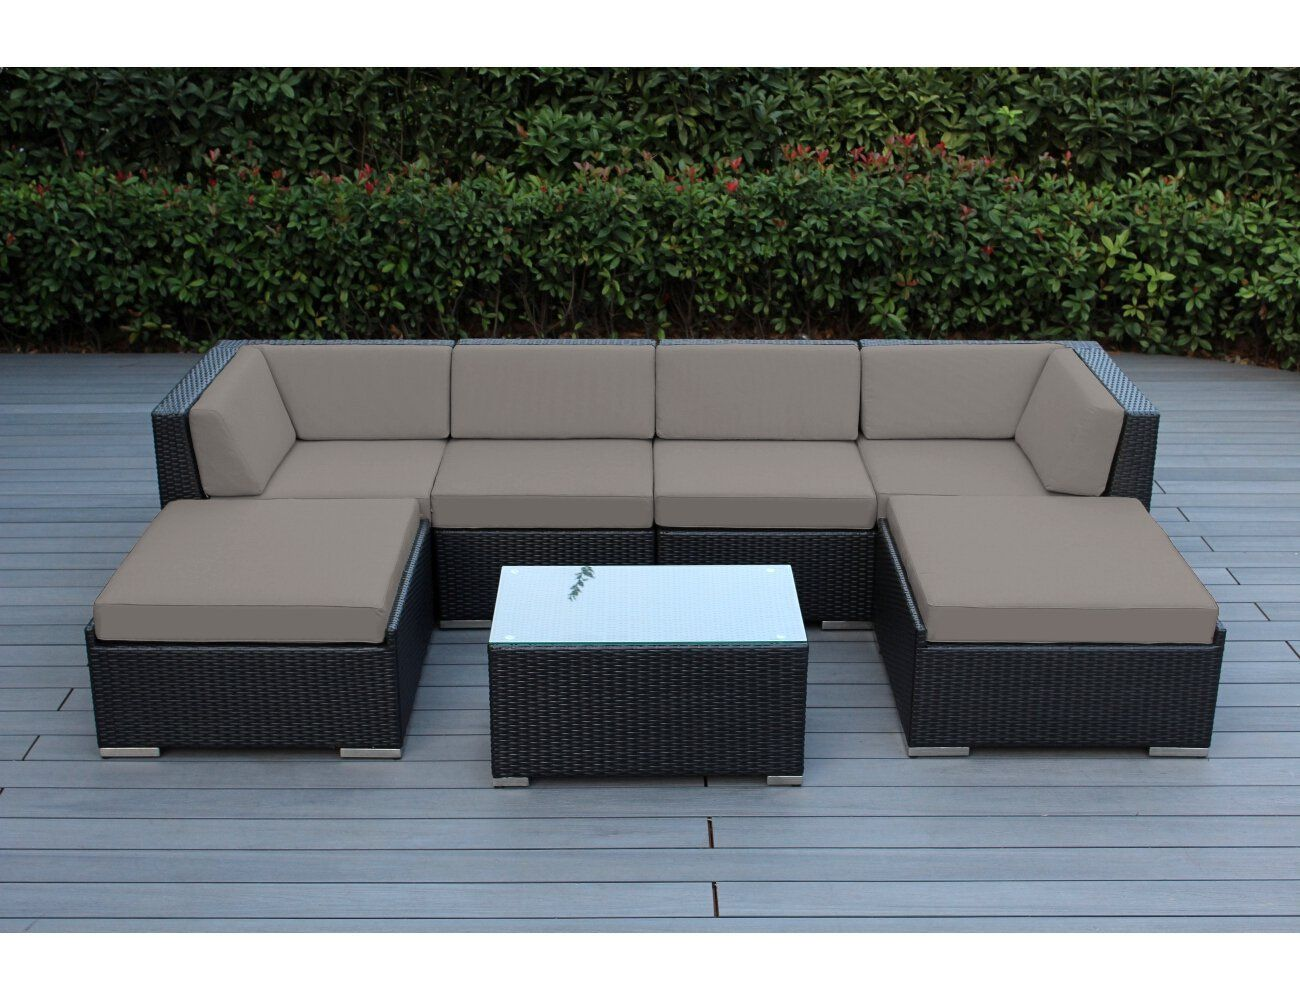 Amazon Sofa Set Simmons Stirling Bed Reviews Ohana Collection 7 Piece Outdoor Sectional